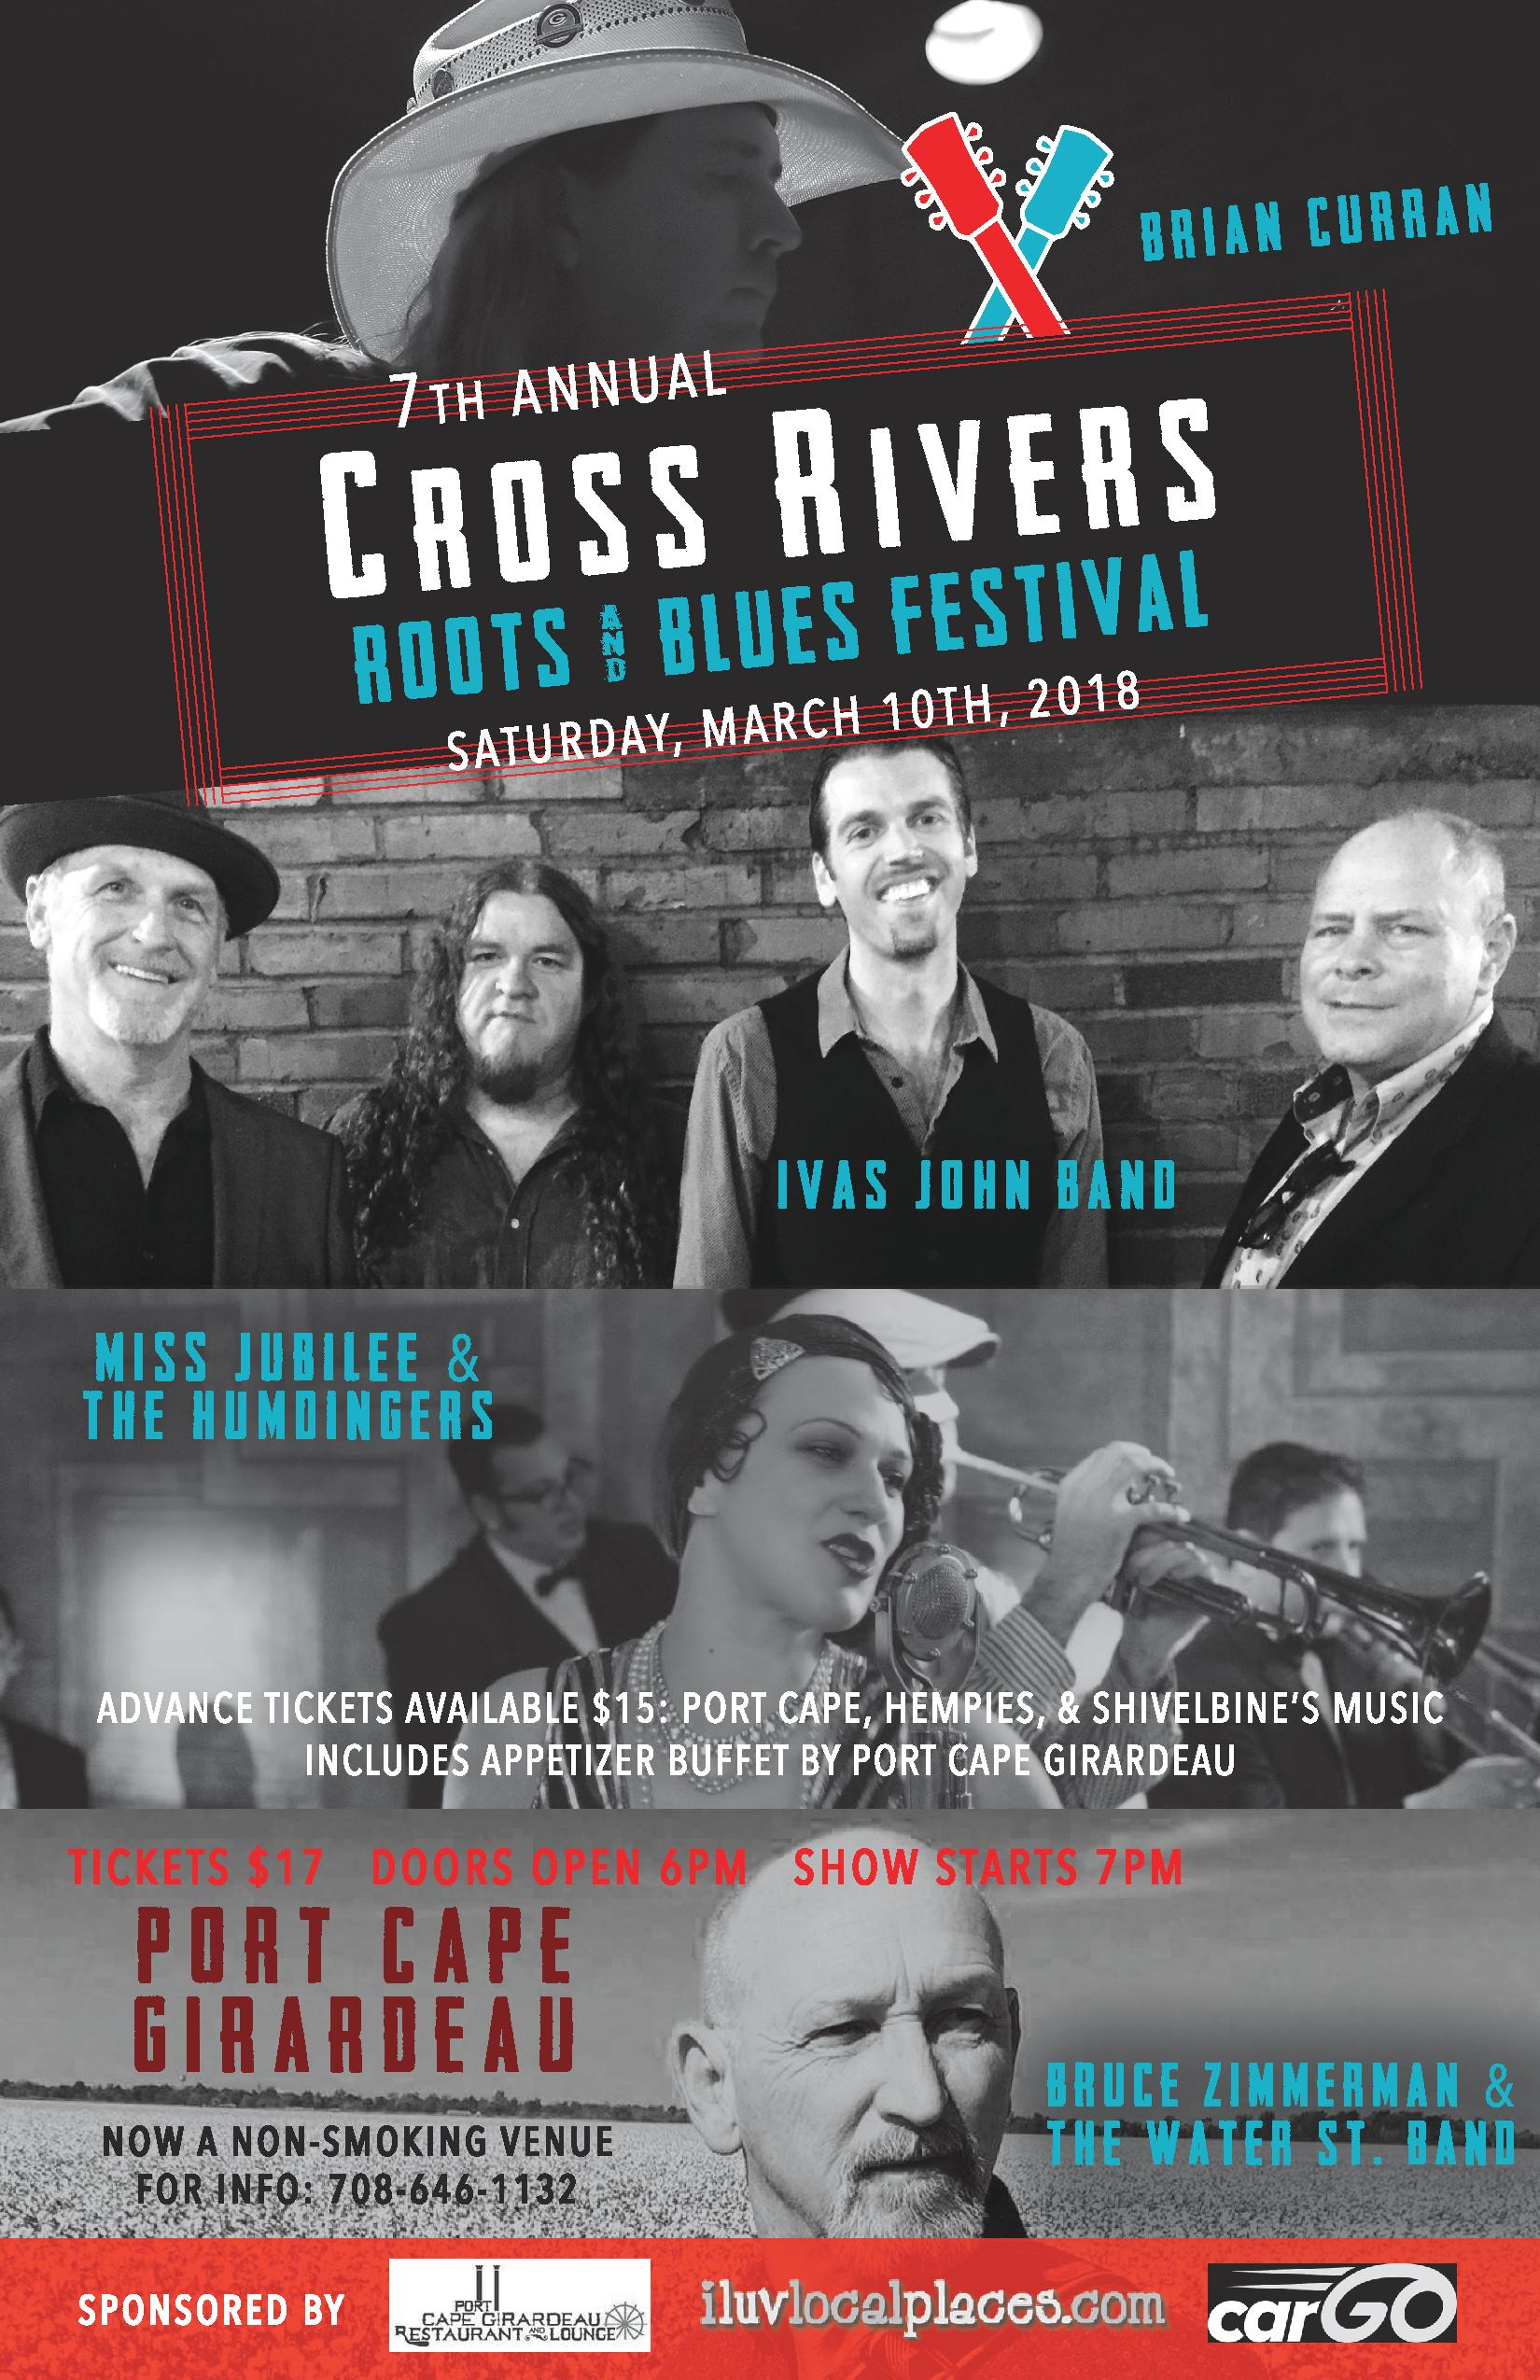 Cross Rivers Roots & Blues Festival